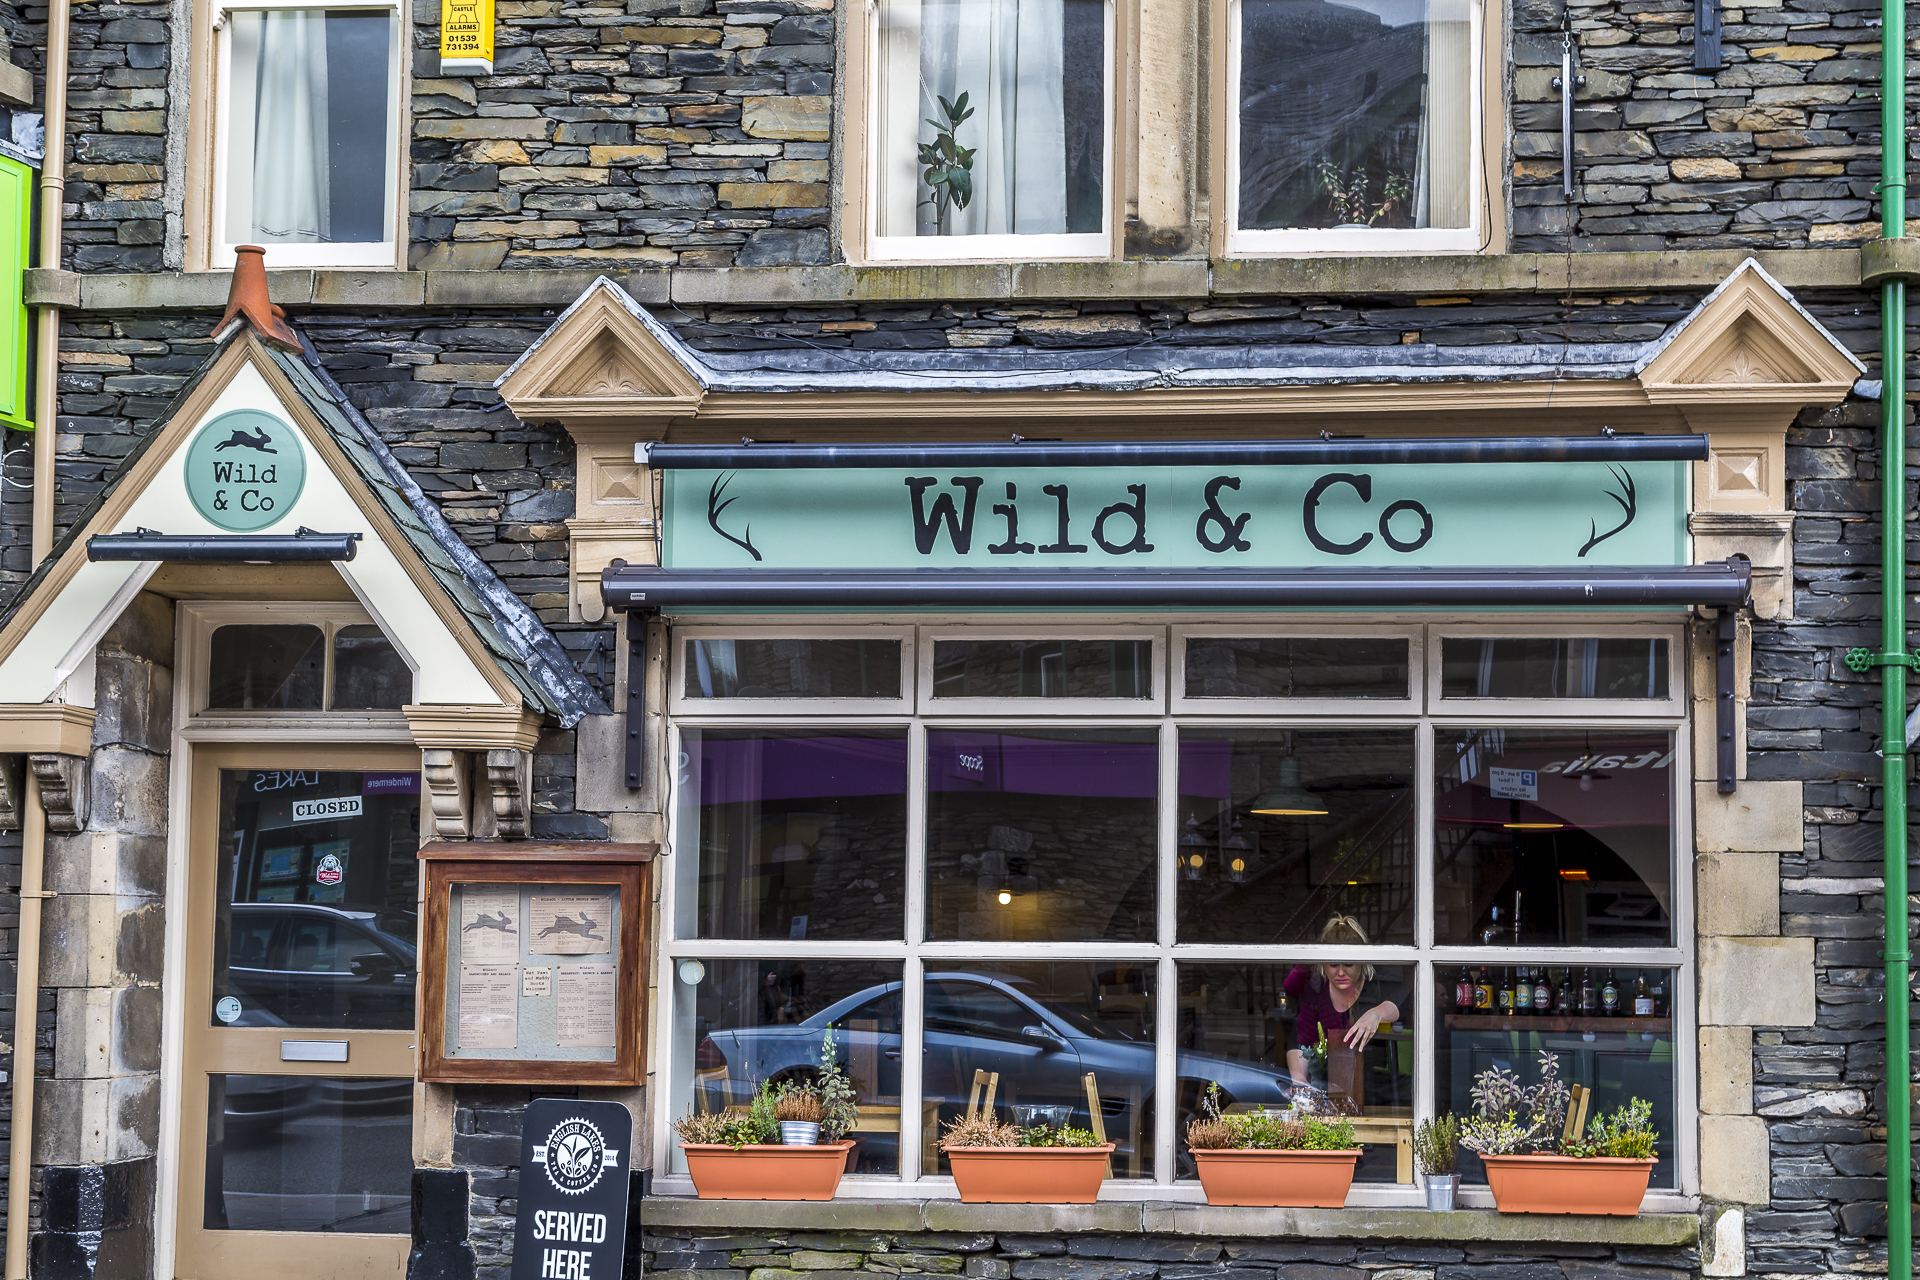 Wild-and-Co-Restaurant-Windermere